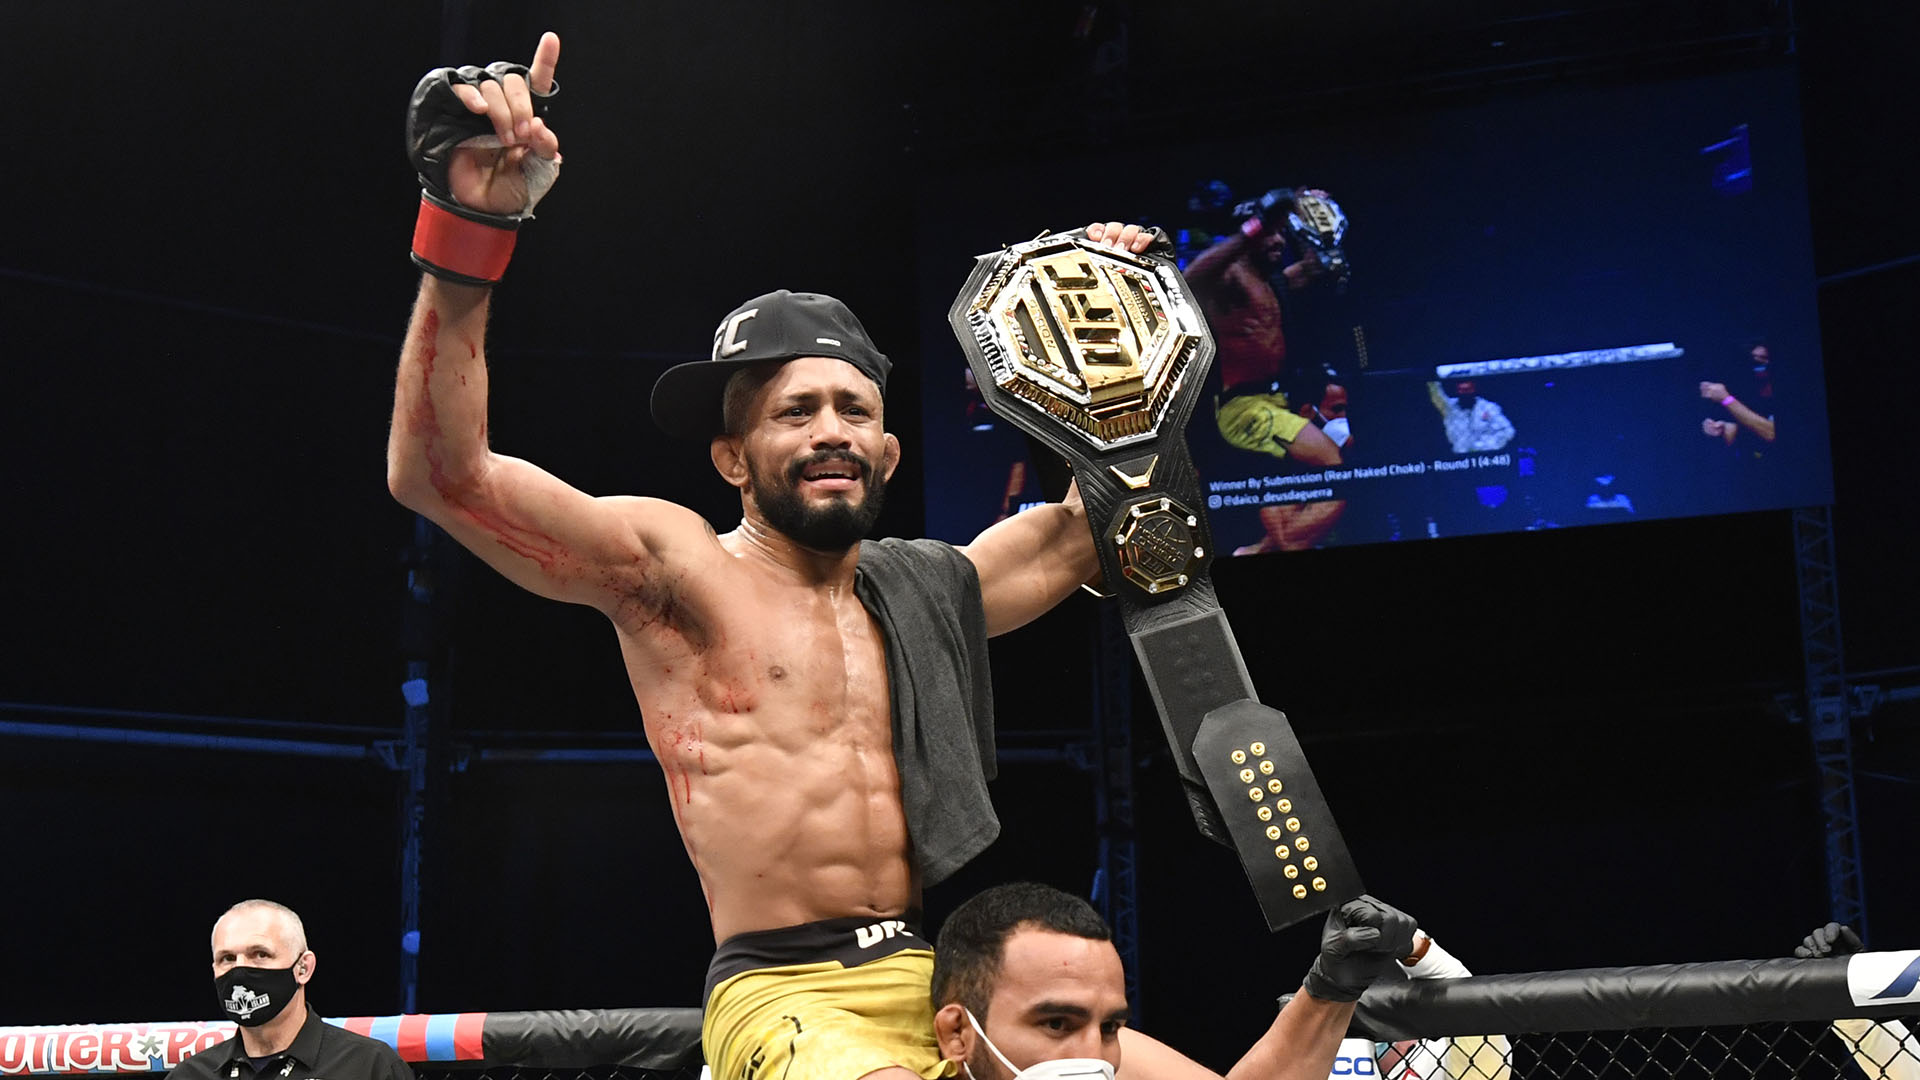 Deiveson Figueiredo celebrates after defeating Joseph Benavidez in their UFC flyweight championship bout on July 19, 2020 on UFC FIGHT ISLAND (Photo by Jeff Bottari/Zuffa LLC)